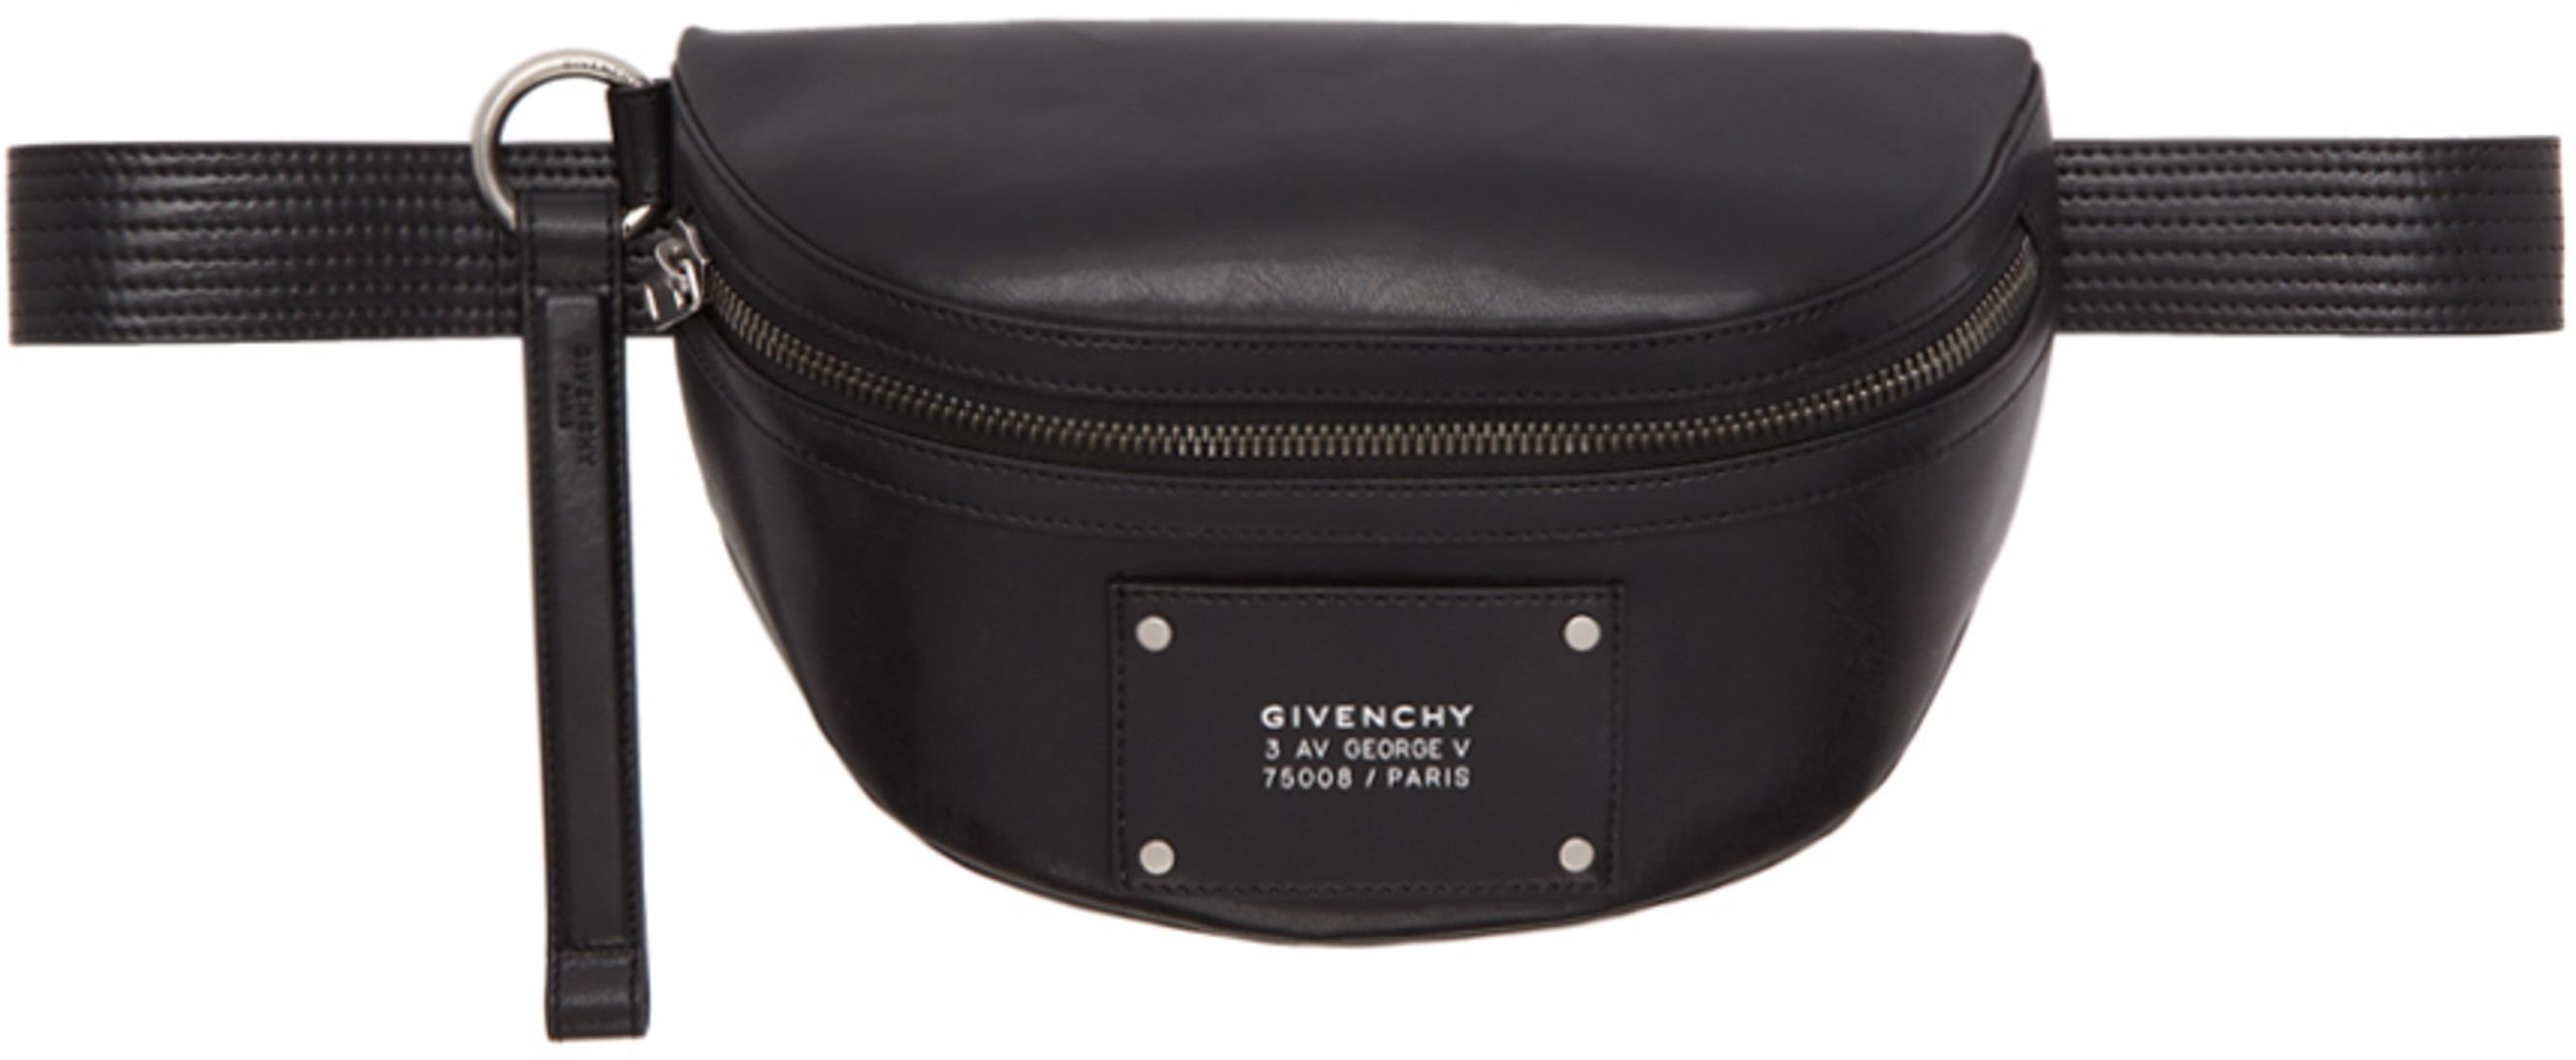 18aeacf8b79 Givenchy bags for Men | SSENSE Canada